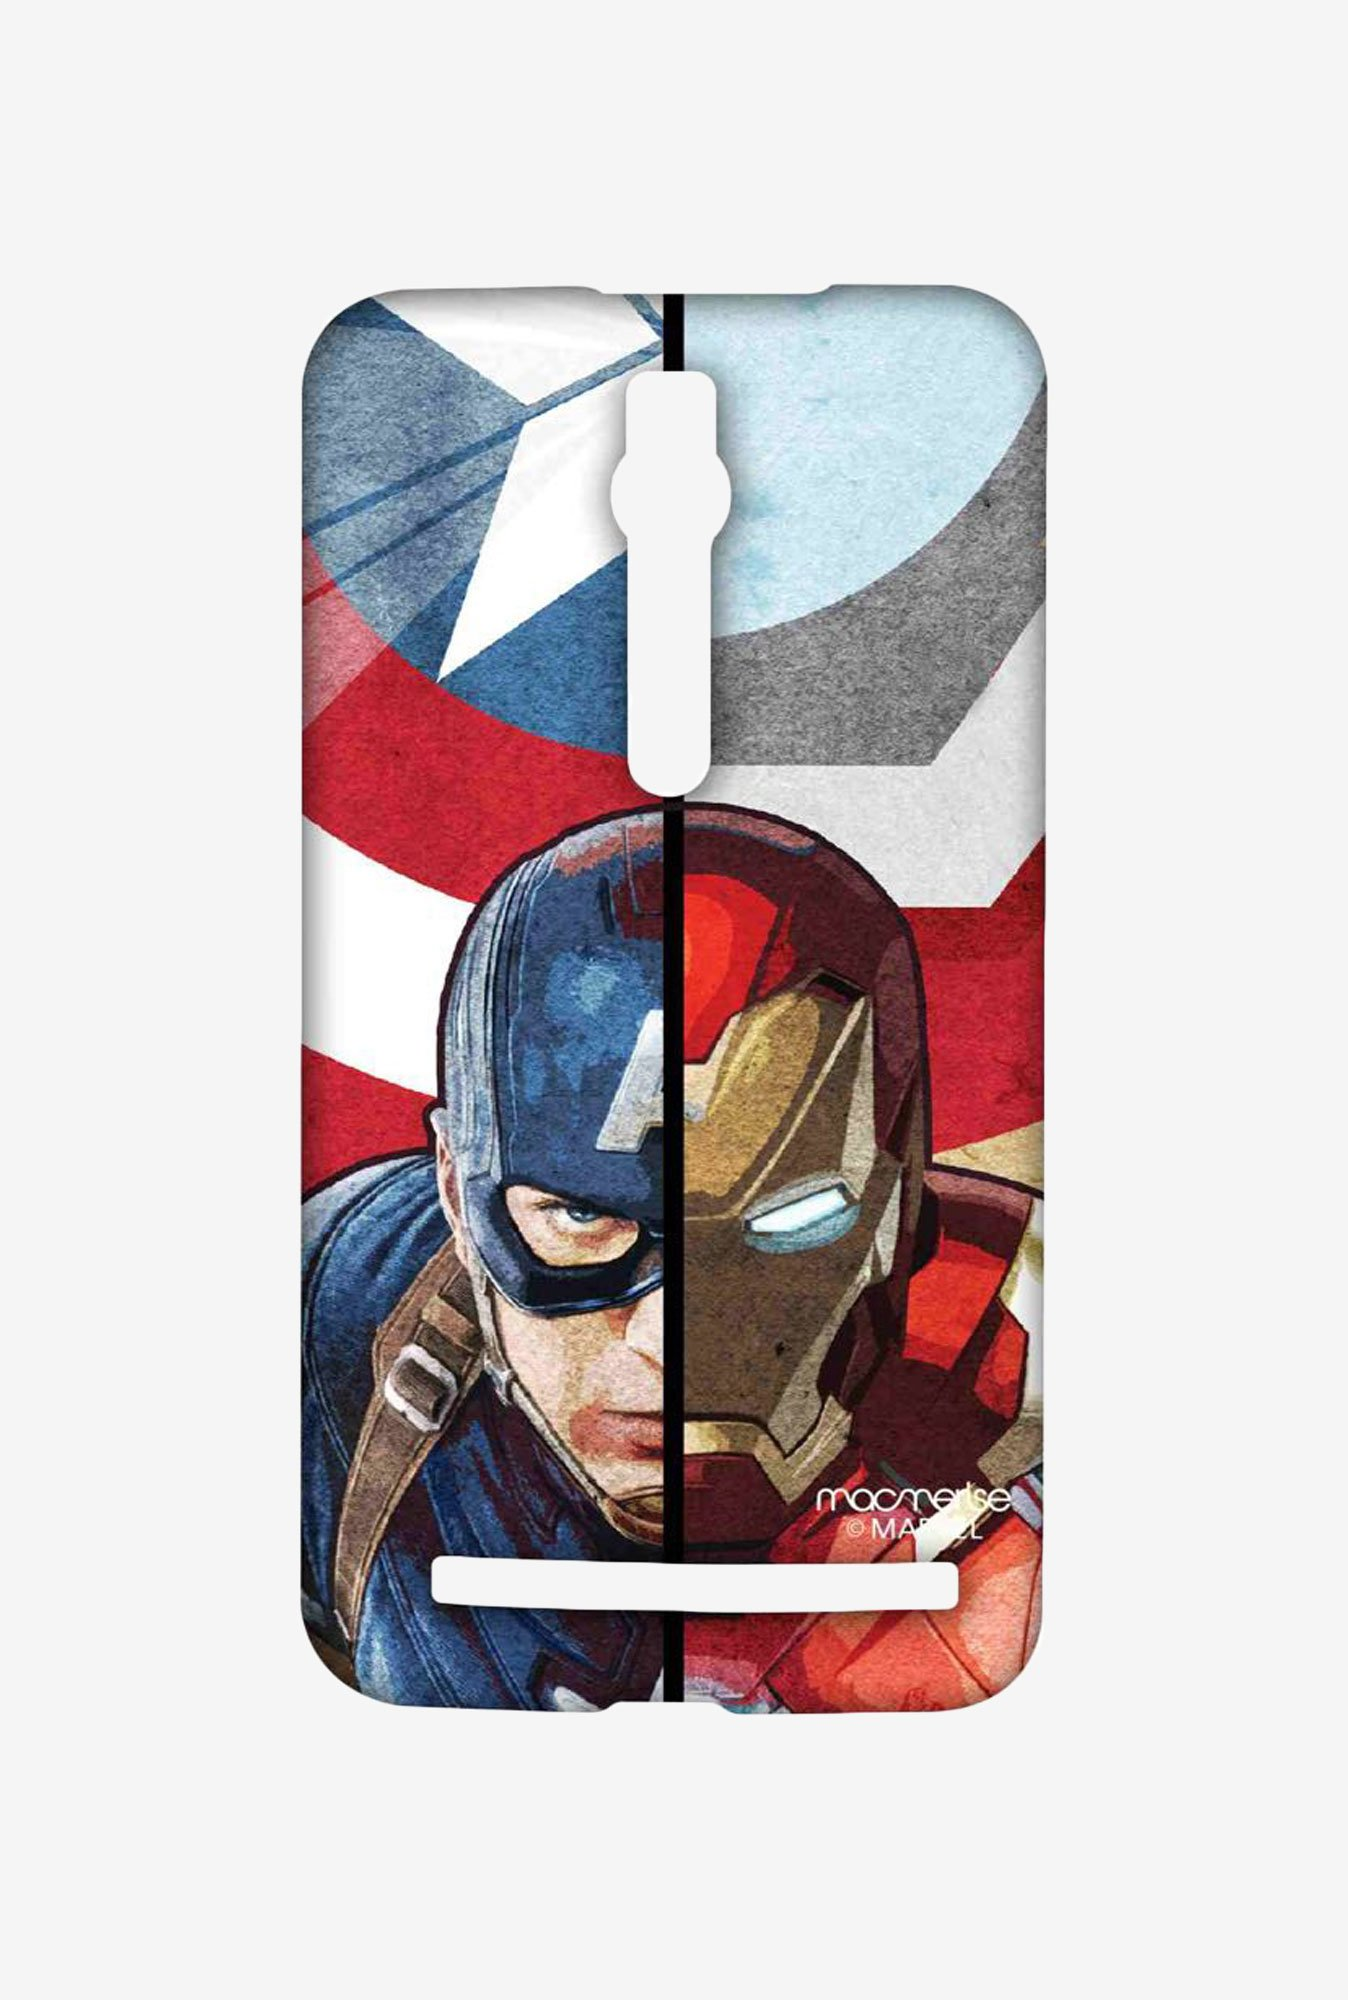 Macmerise Man vs Machine Sublime Case for Asus Zenfone 2